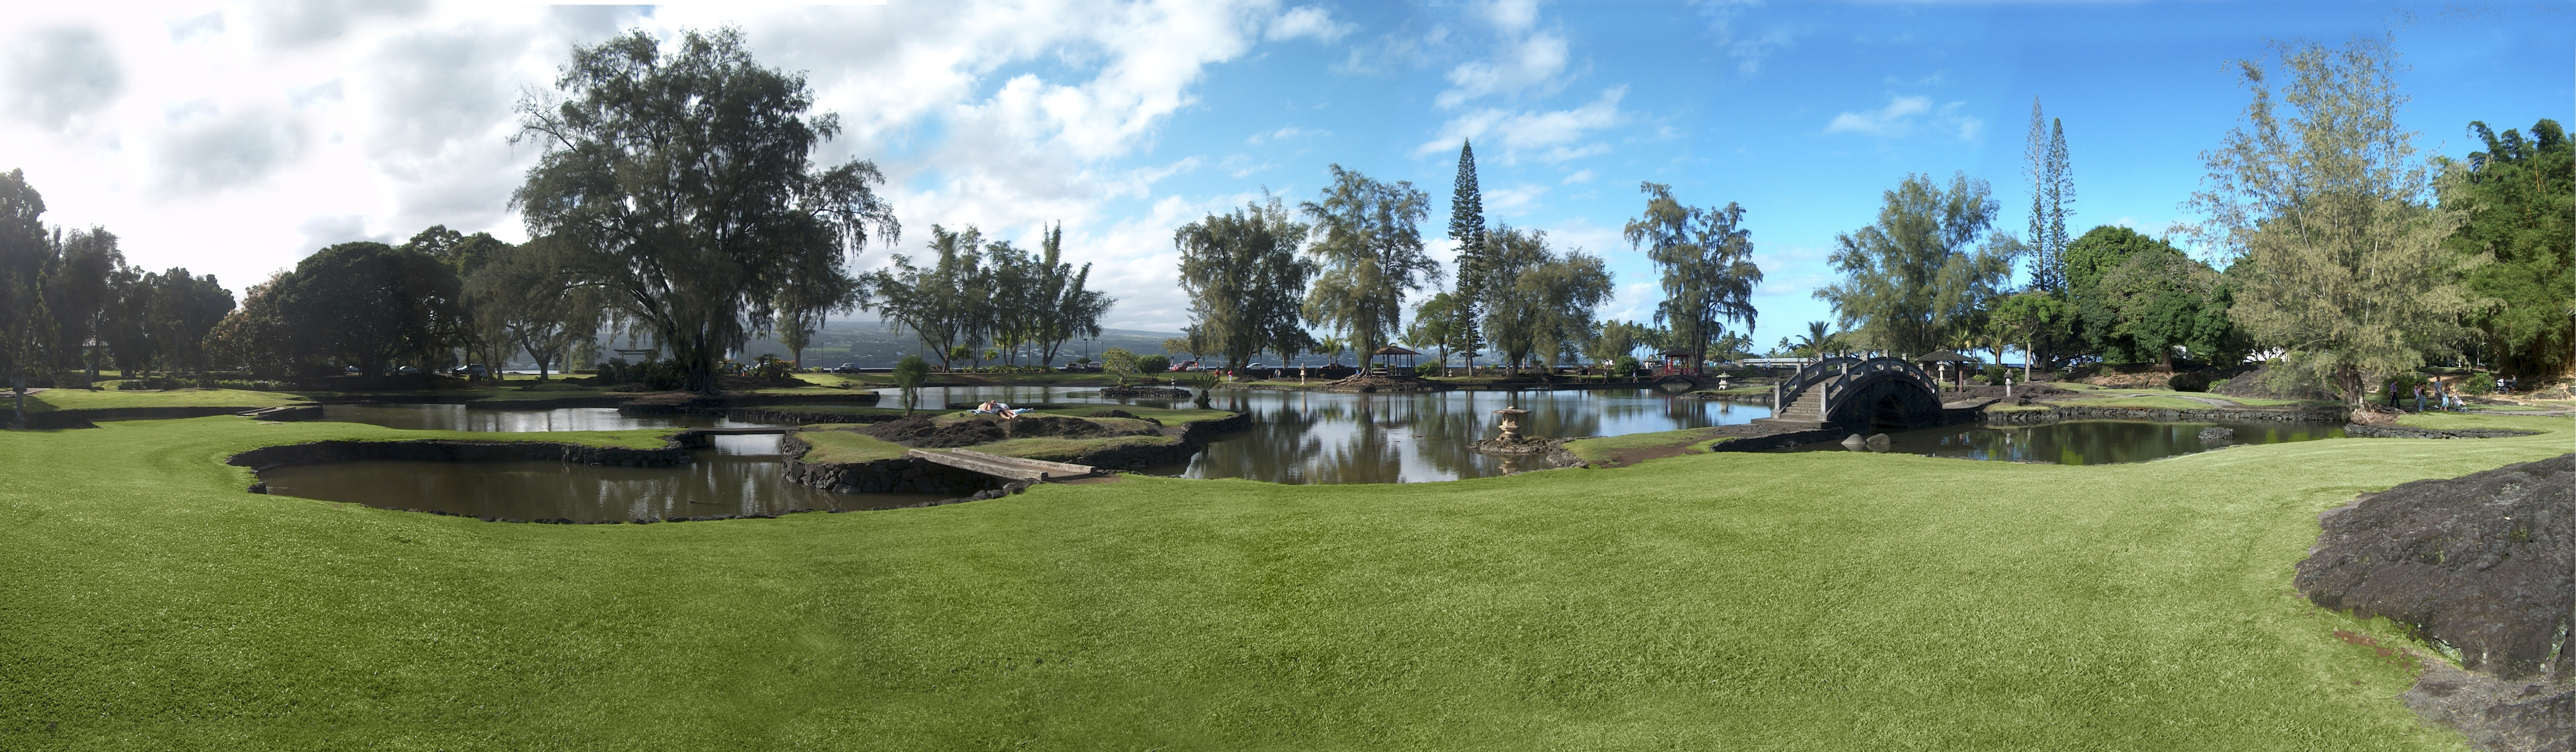 File:LilioukalaniGardens Hilo Hawaii panorama.jpg ...